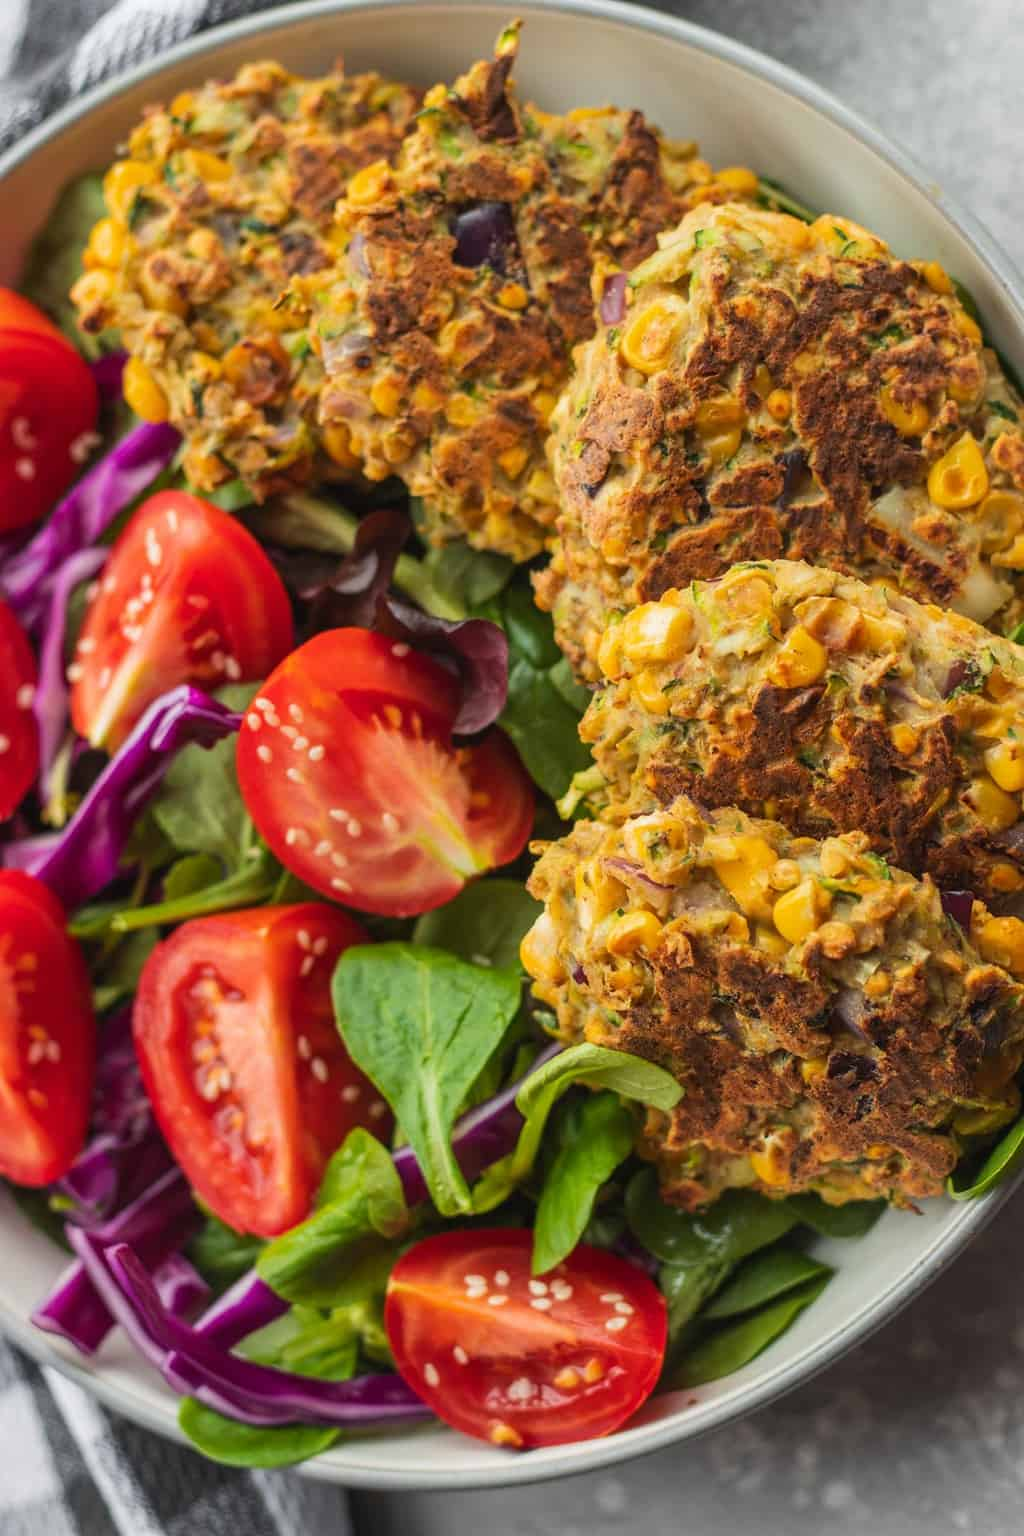 Vegan red lentil zucchini fritters with sweetcorn and a side salad